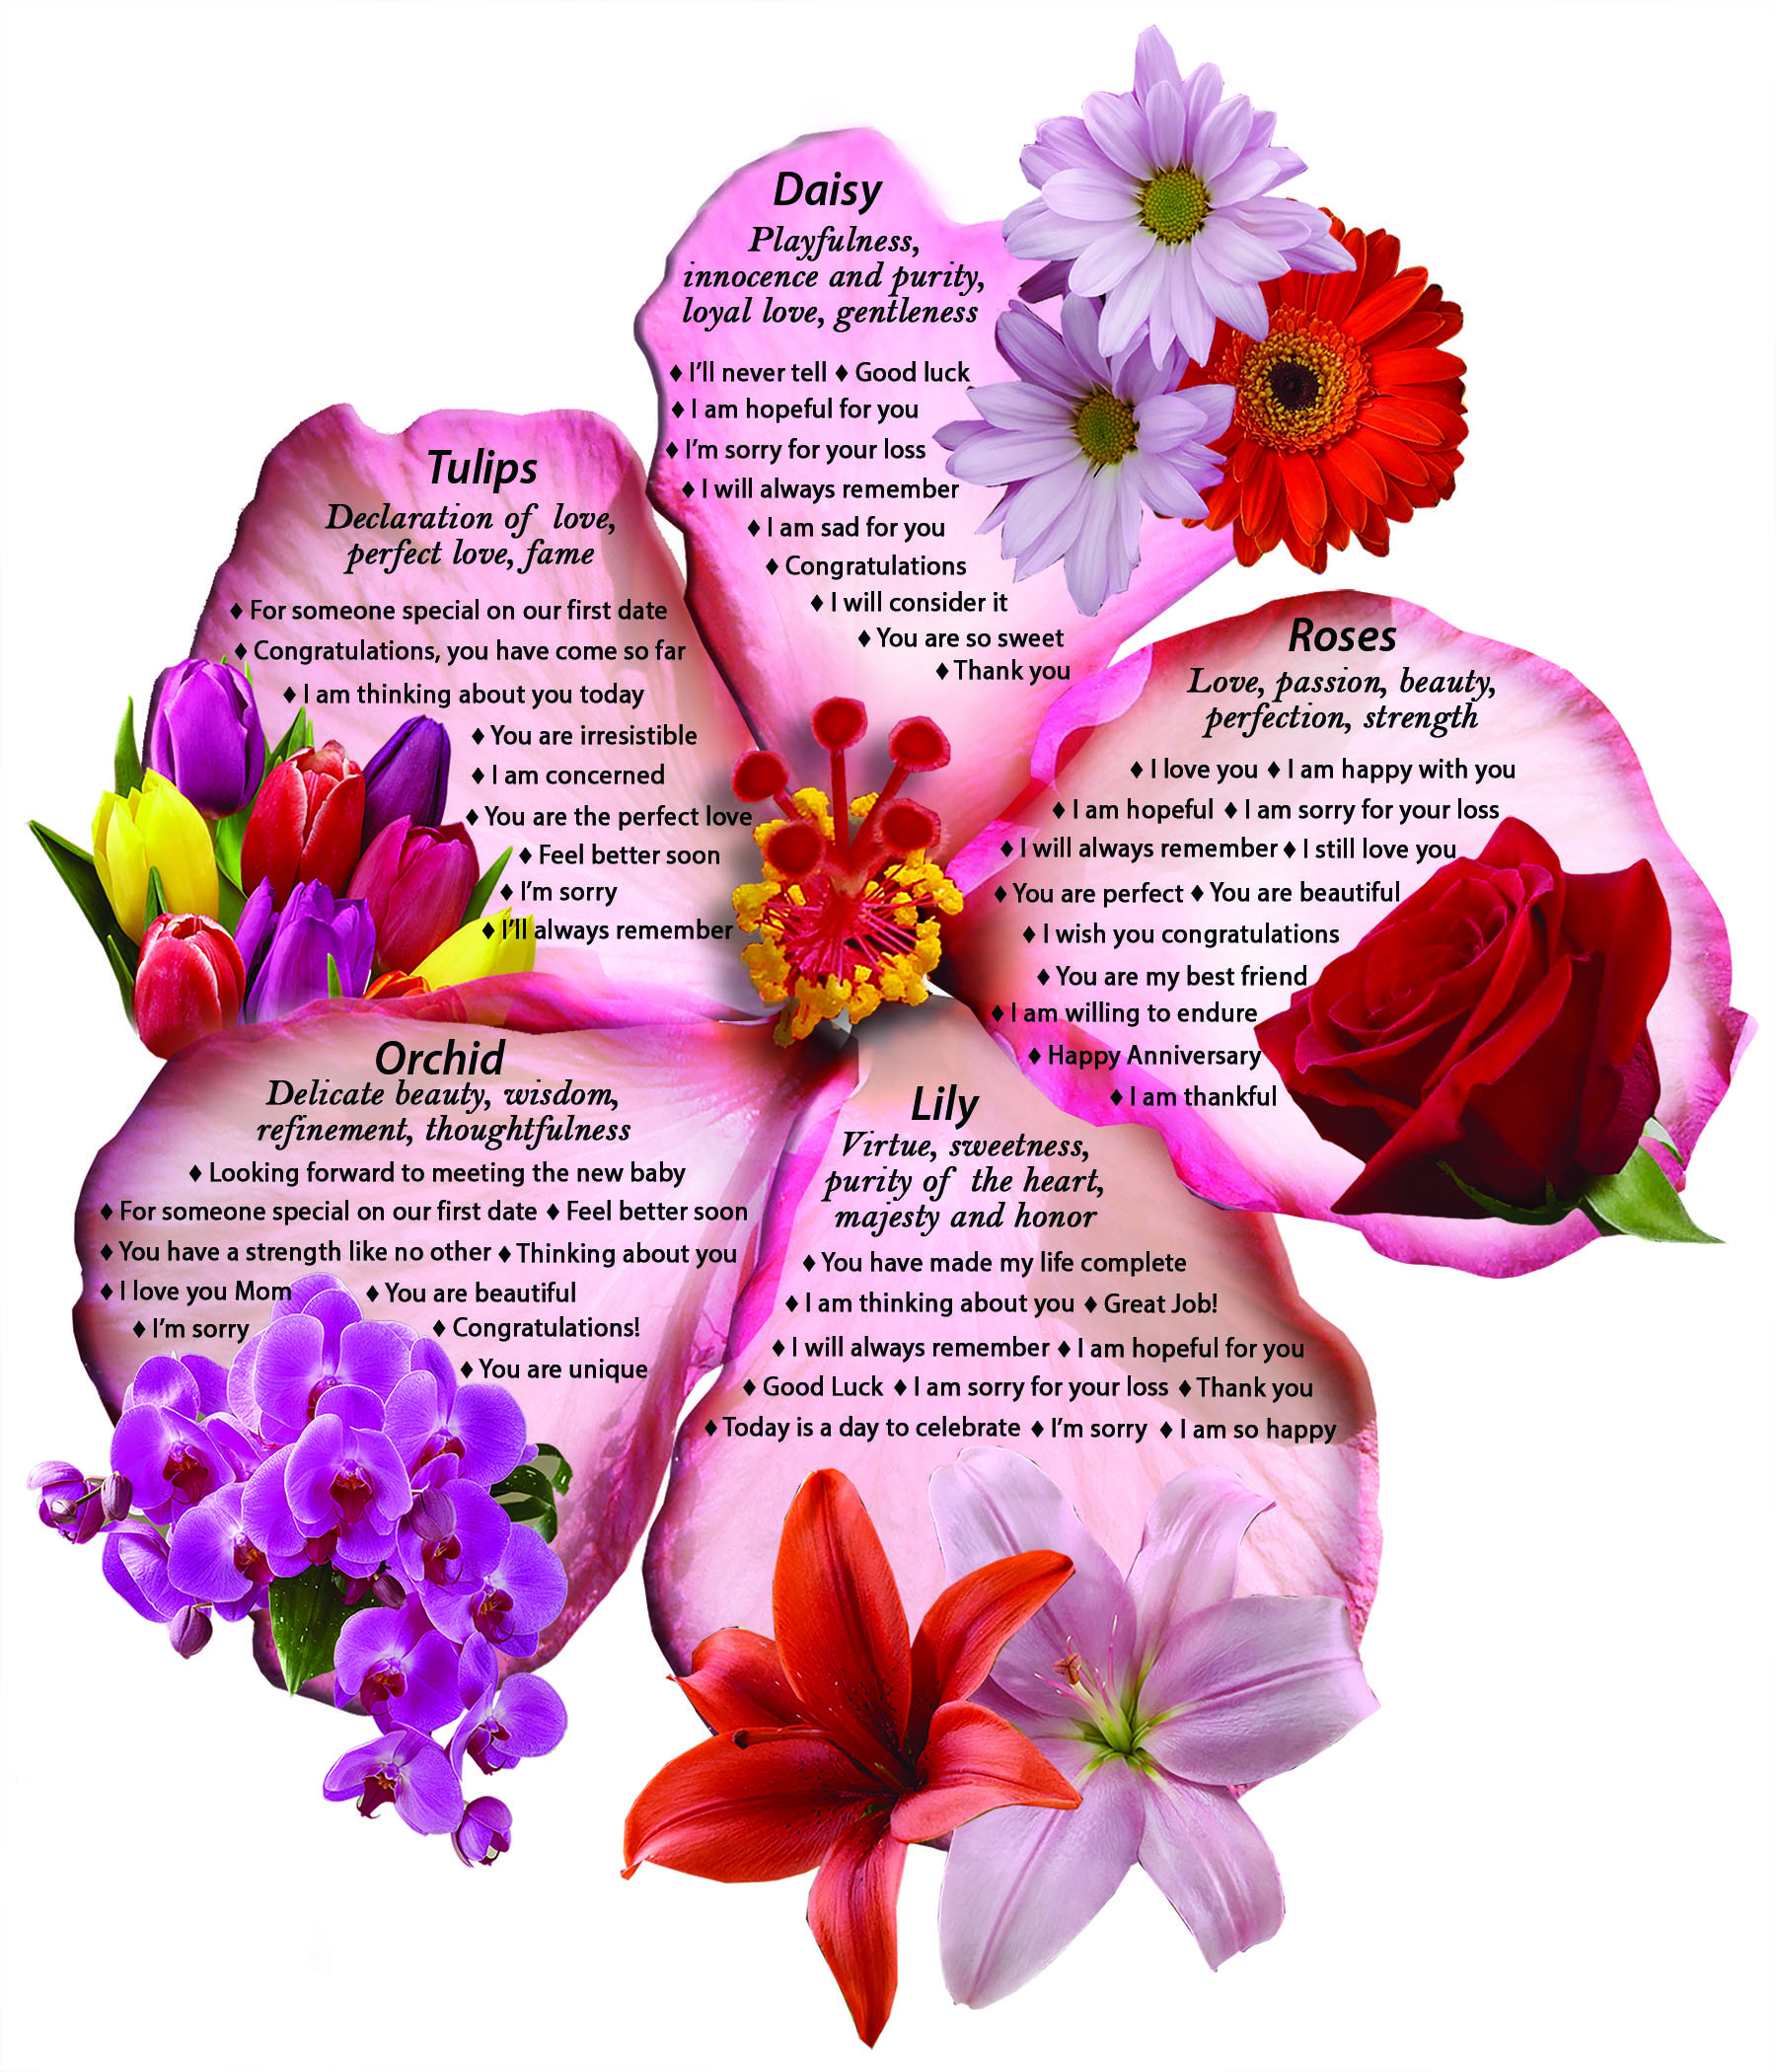 The language of flowers whats the real meaning of that valentines language of flowers infographic blooms today izmirmasajfo